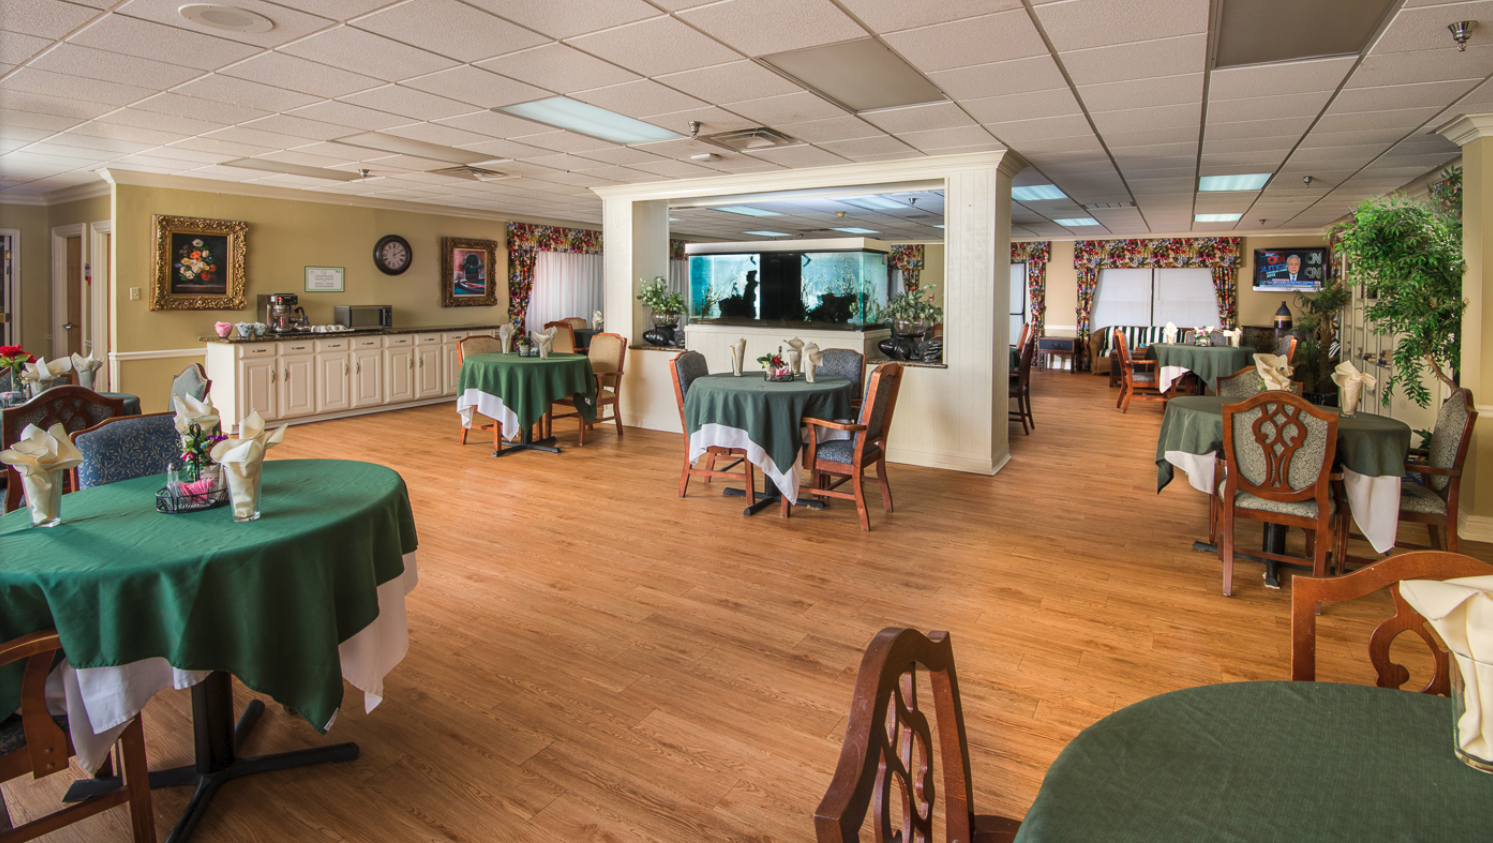 The Gables at Spring Lake Assisted Living [Senior Care Centers] image 1